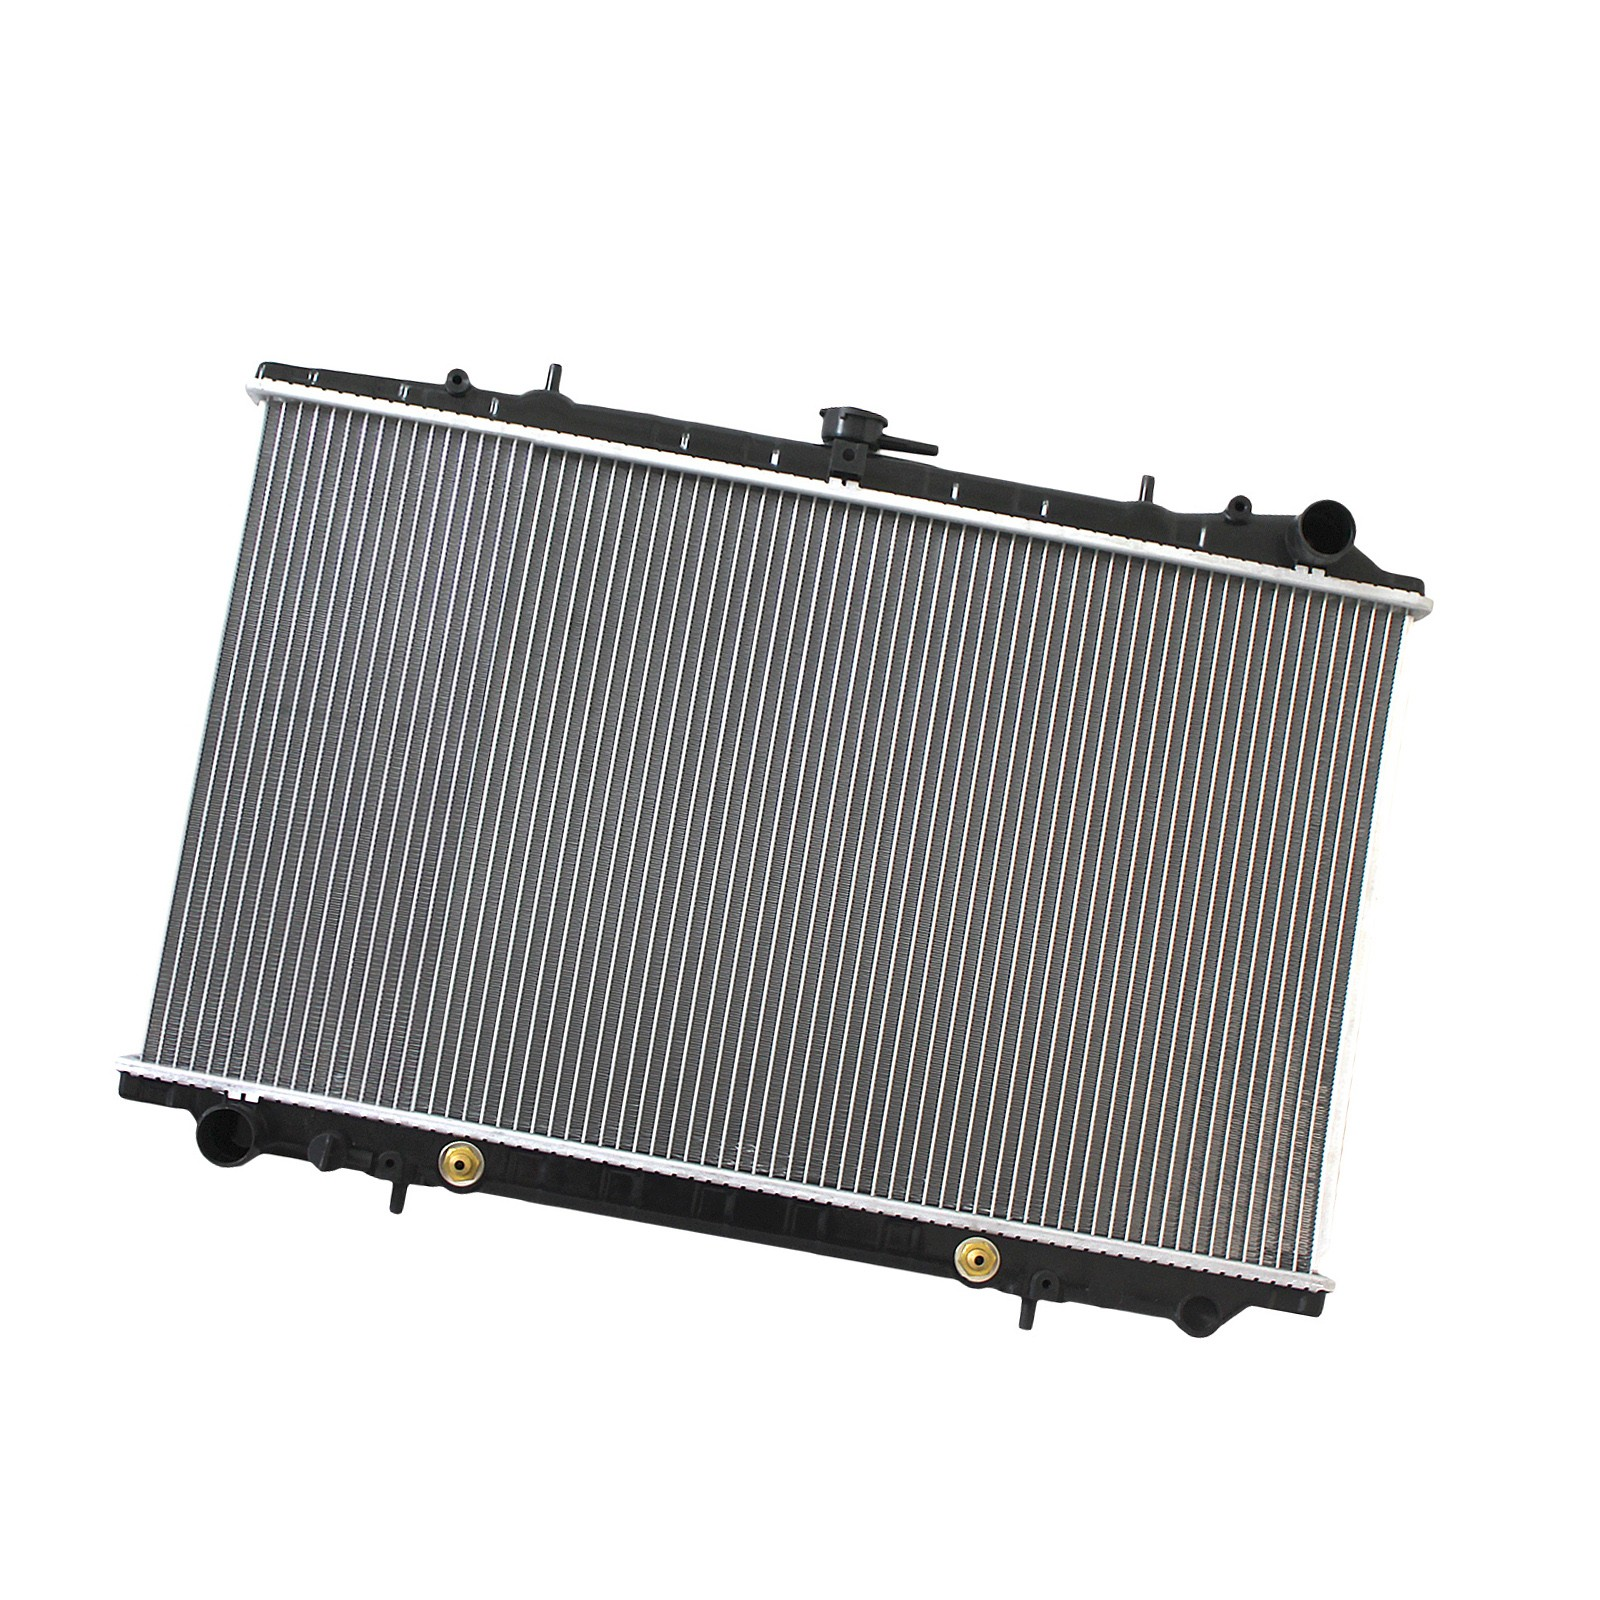 Dromedary-Mercedes Radiator Manufacture | New Radiator For 90-96 Nissan 300zx 30l